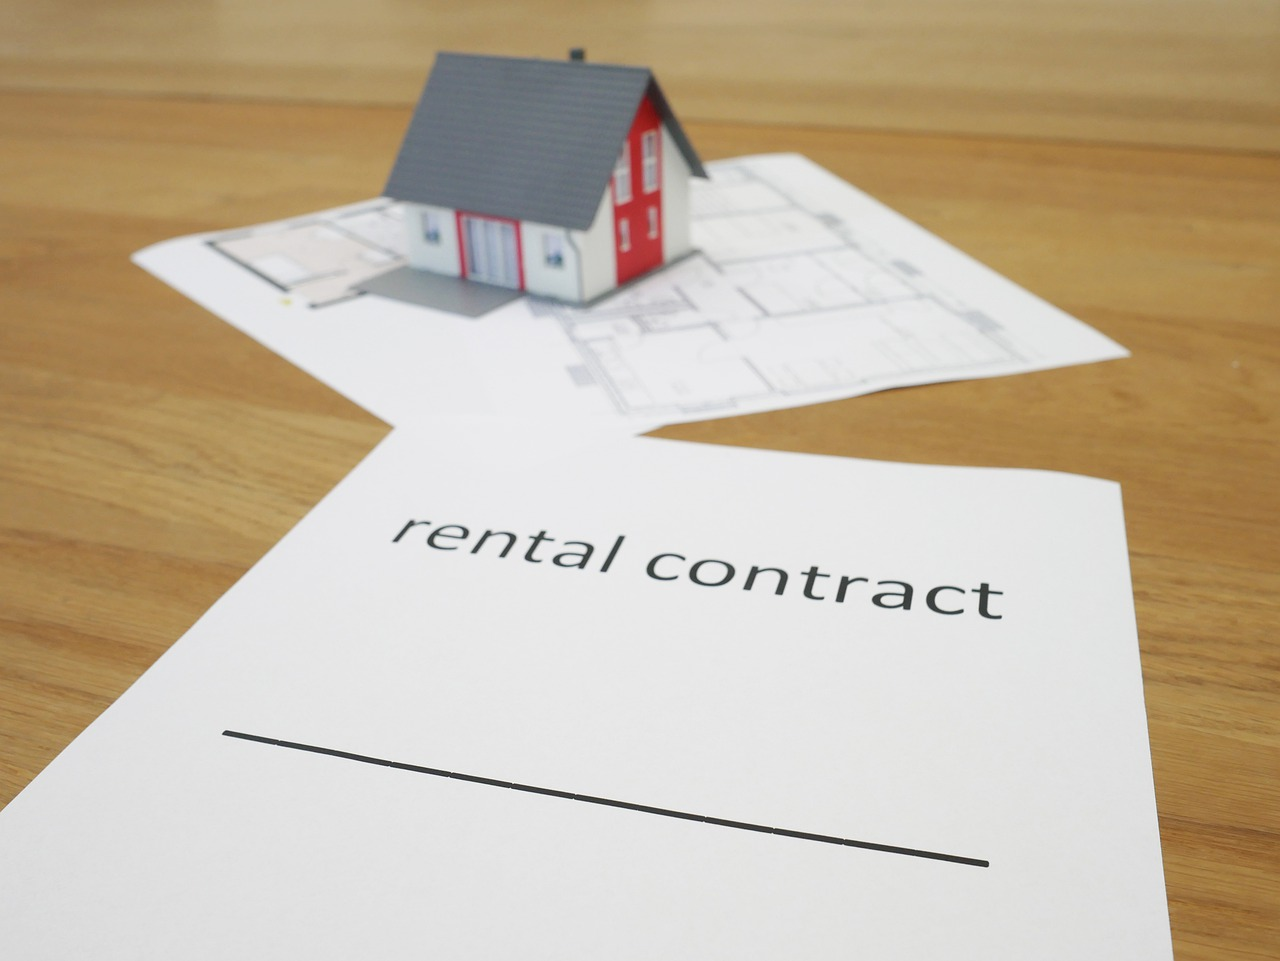 White rental contract paper with miniature house.